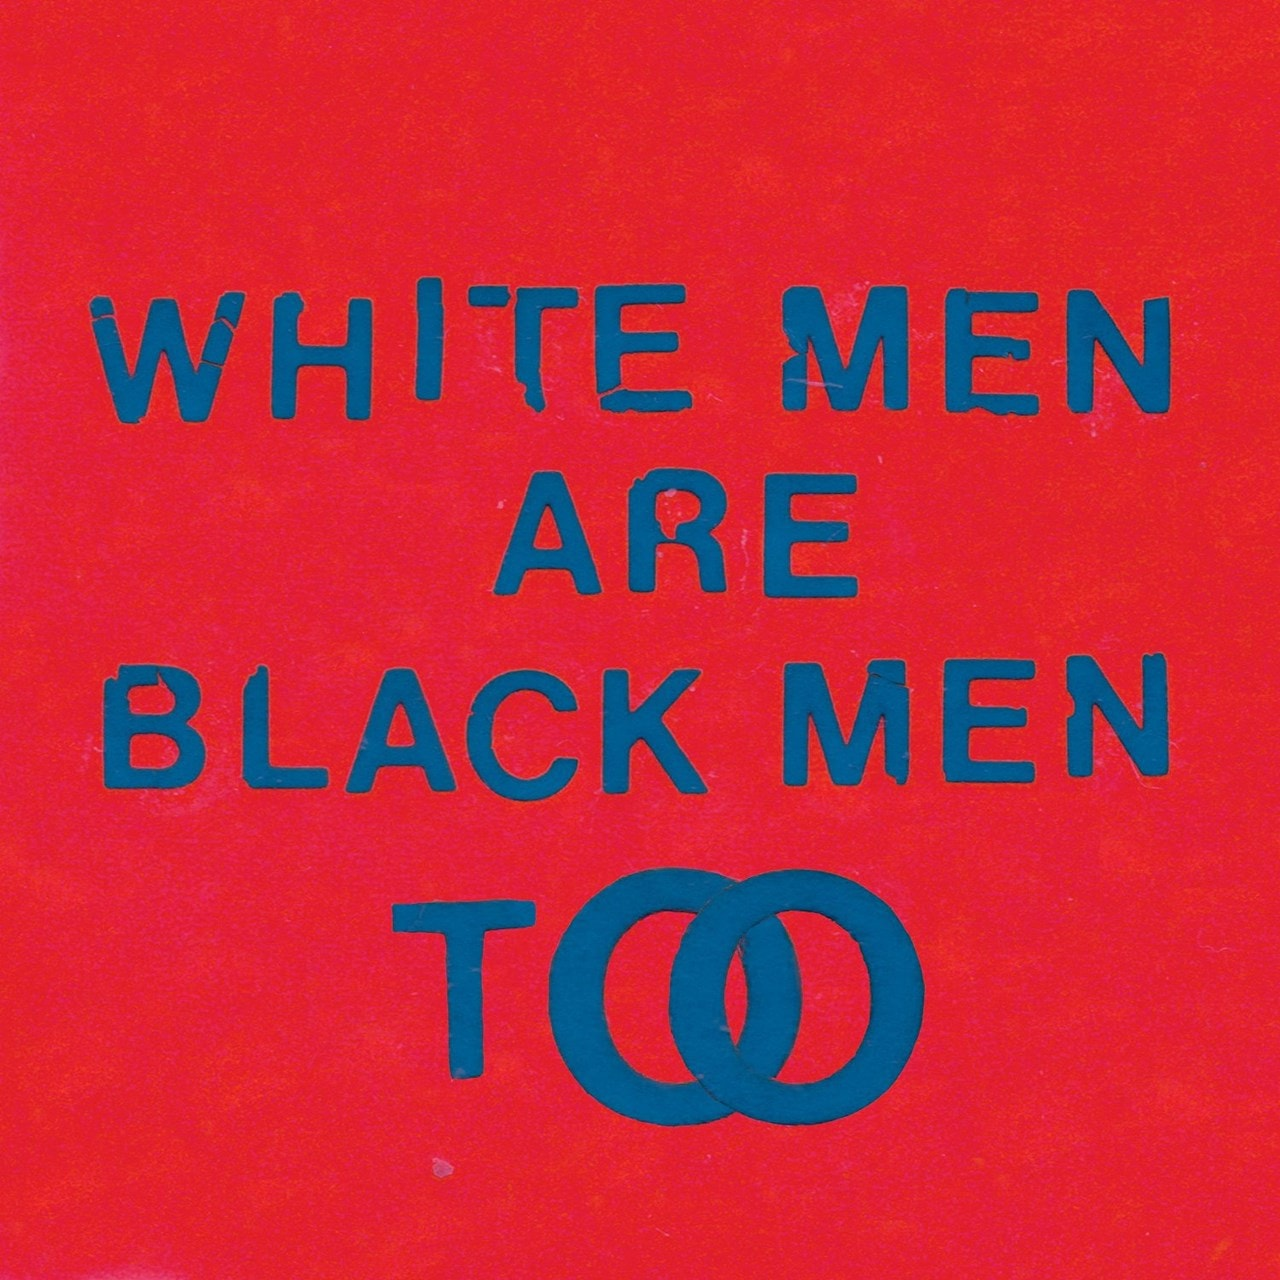 White Men Are Black Men Too - 1